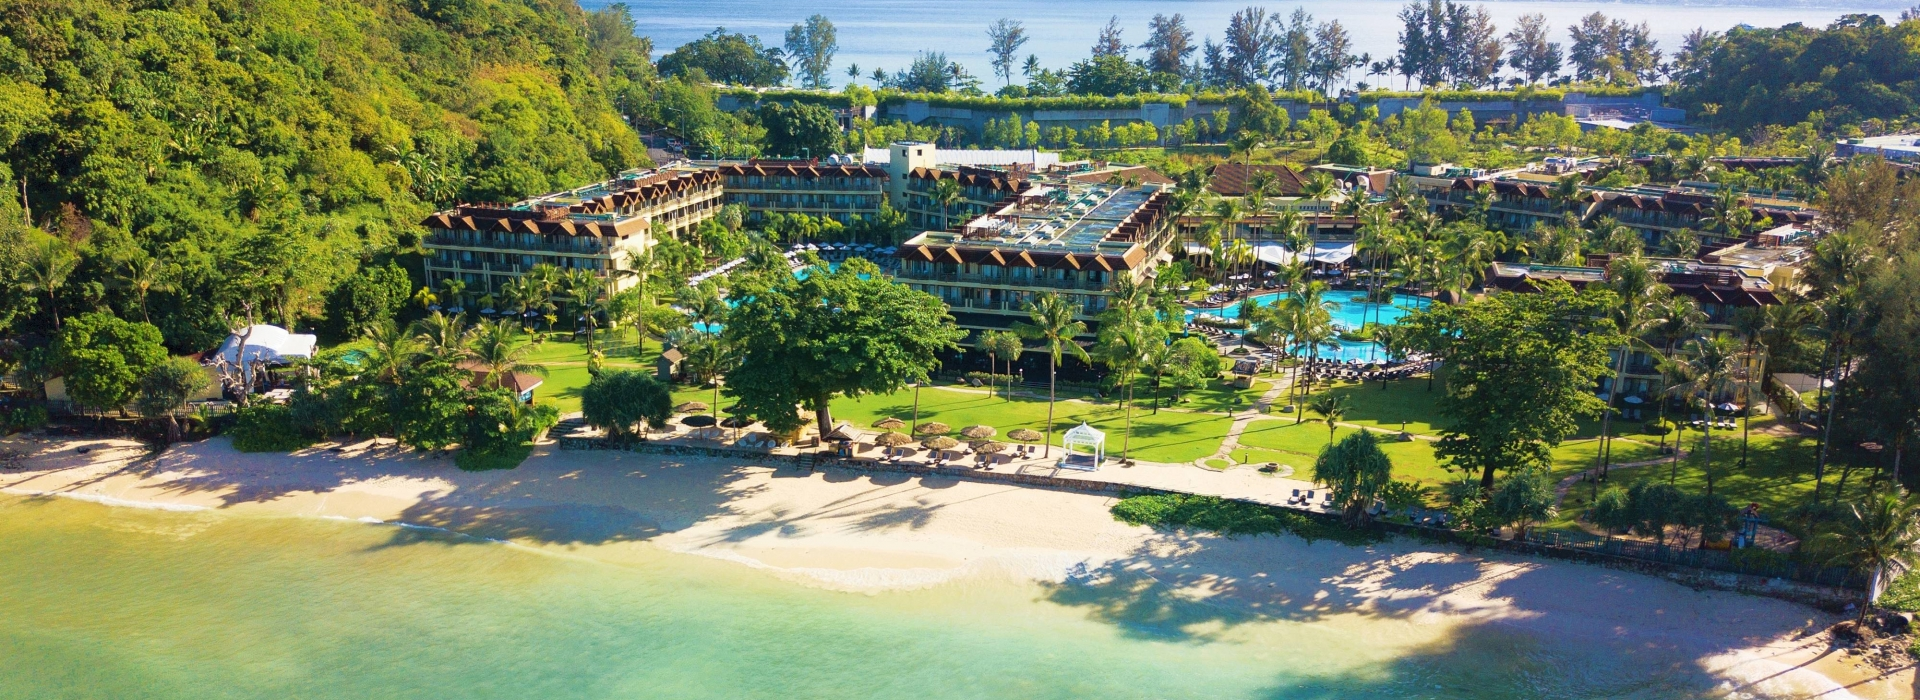 PHUKET MARRIOTT RESORT & SPA MERLIN BEACH 5*